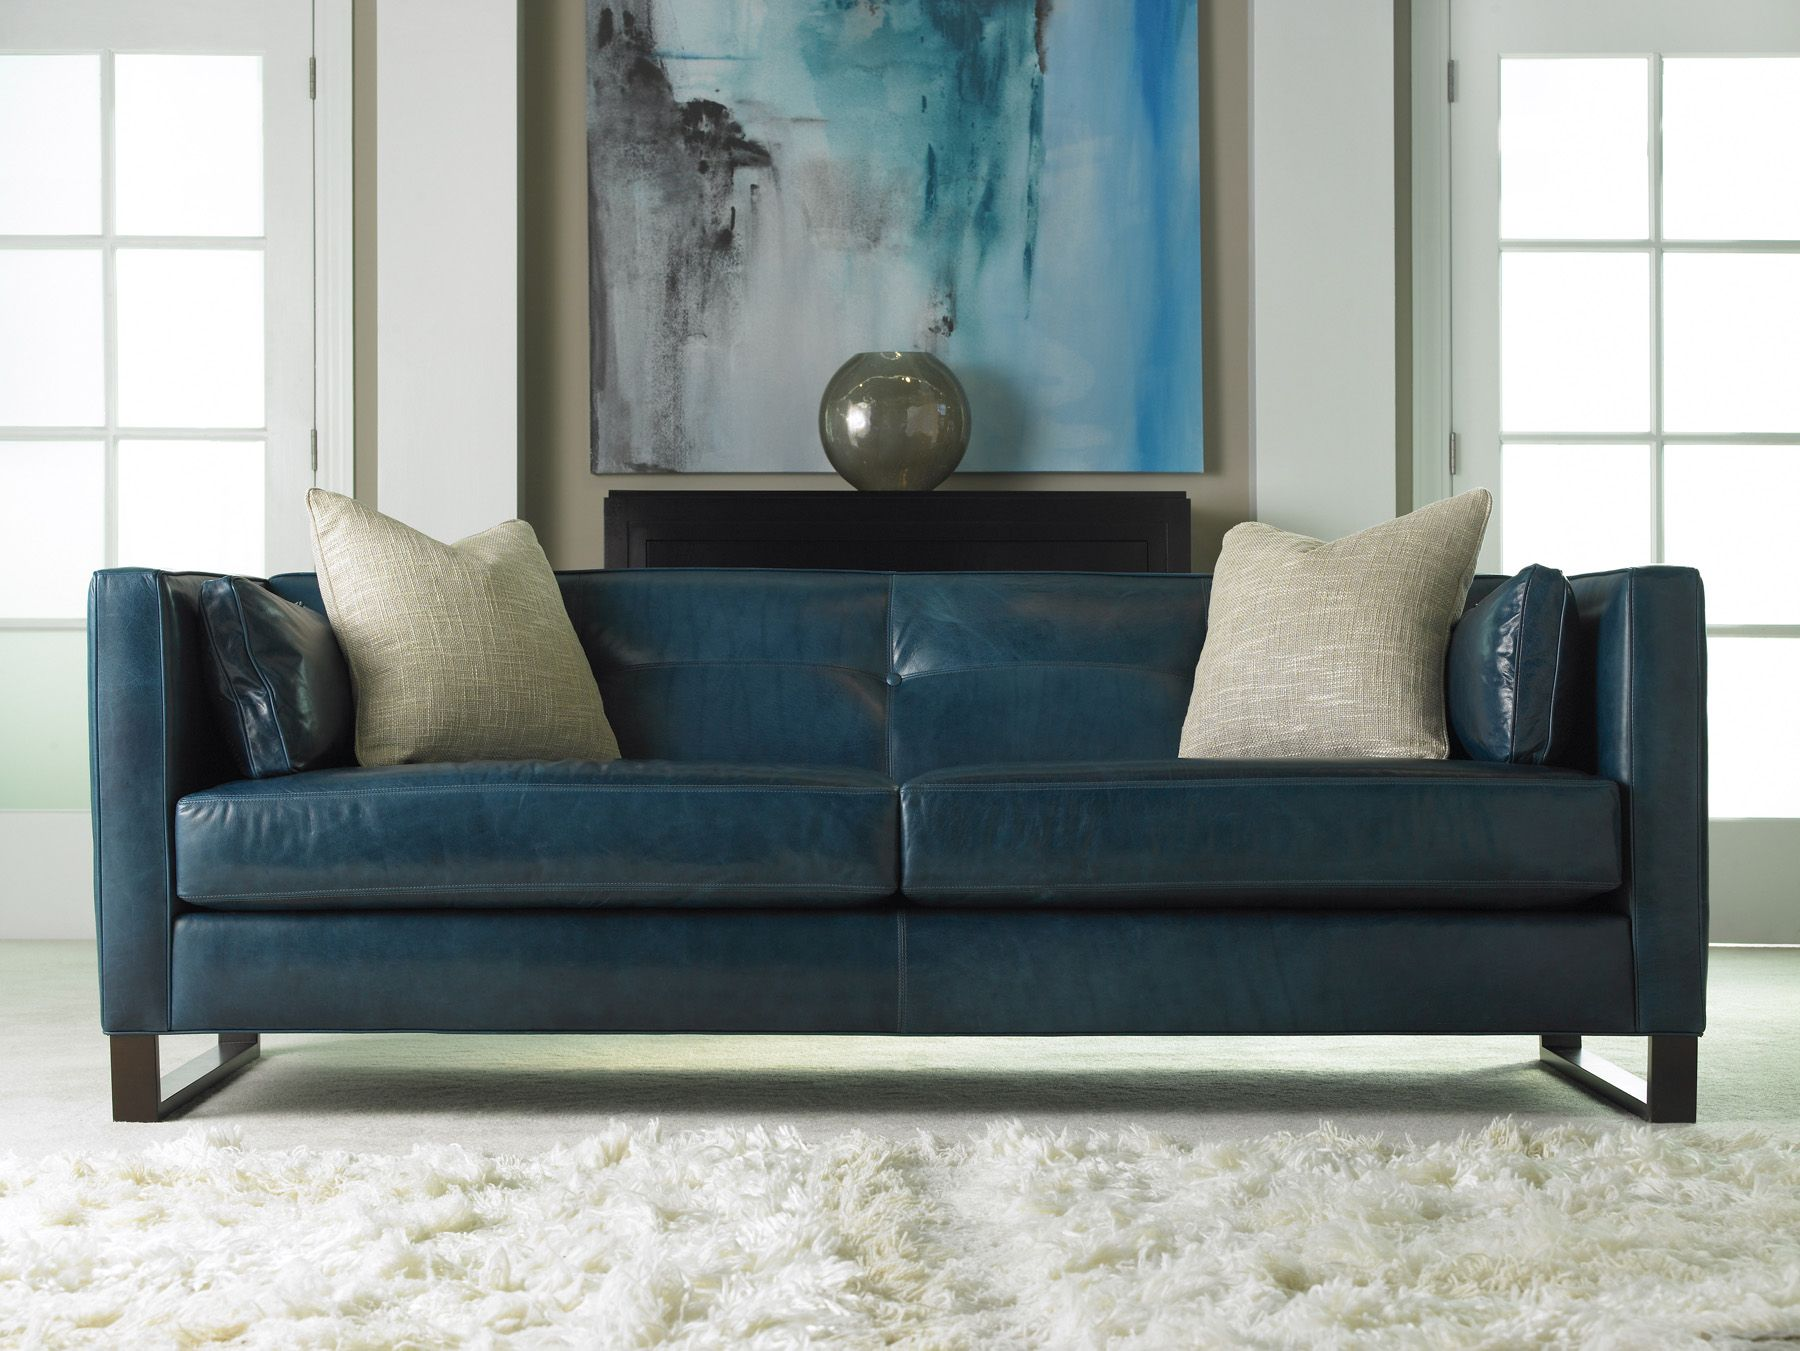 Small Leather Sofa In 2020 Blue Leather Sofa Blue Couch Living Room Leather Living Room Furniture